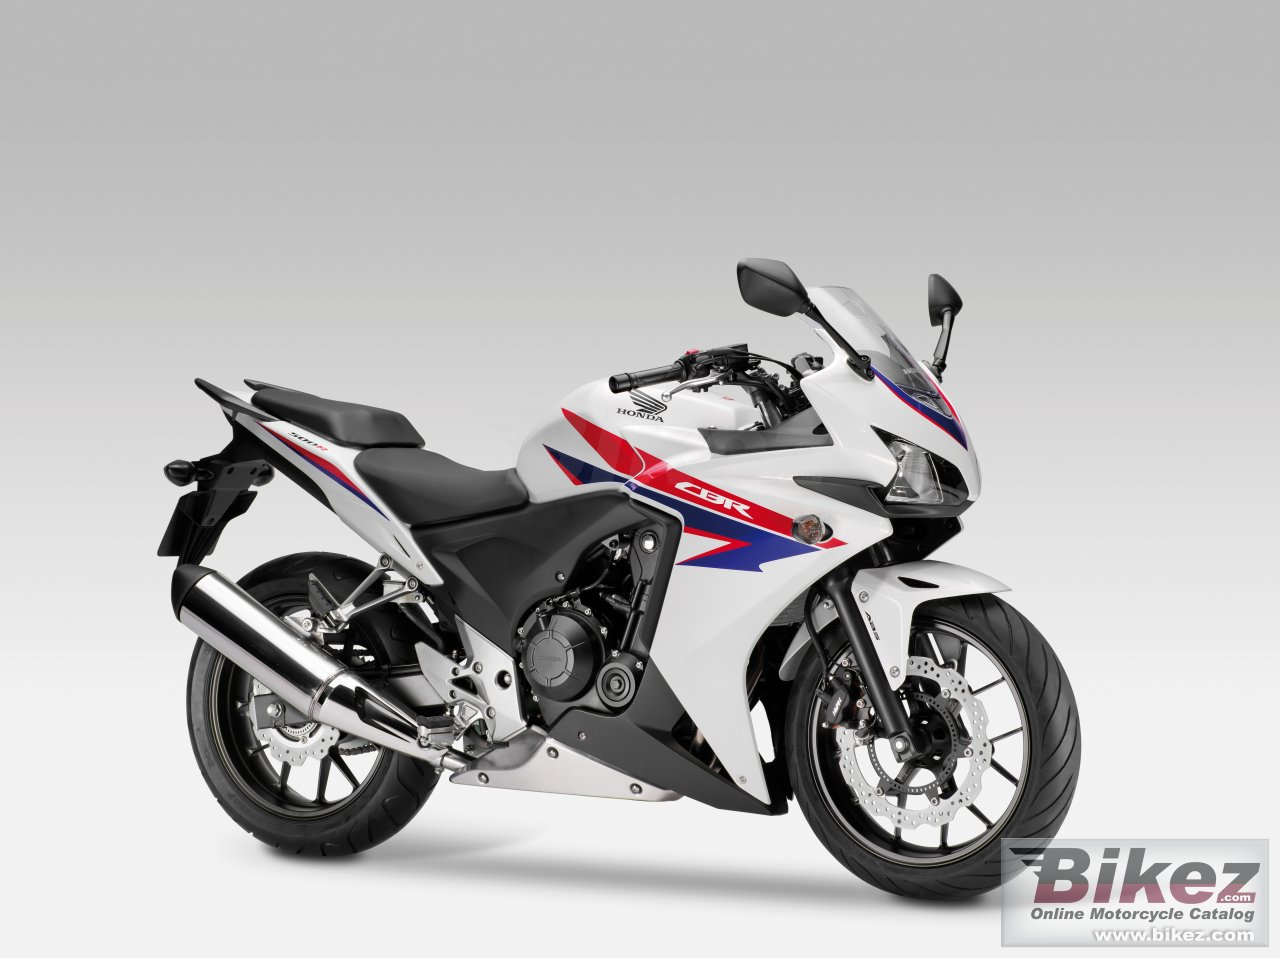 Big Honda cbr500r picture and wallpaper from Bikez.com